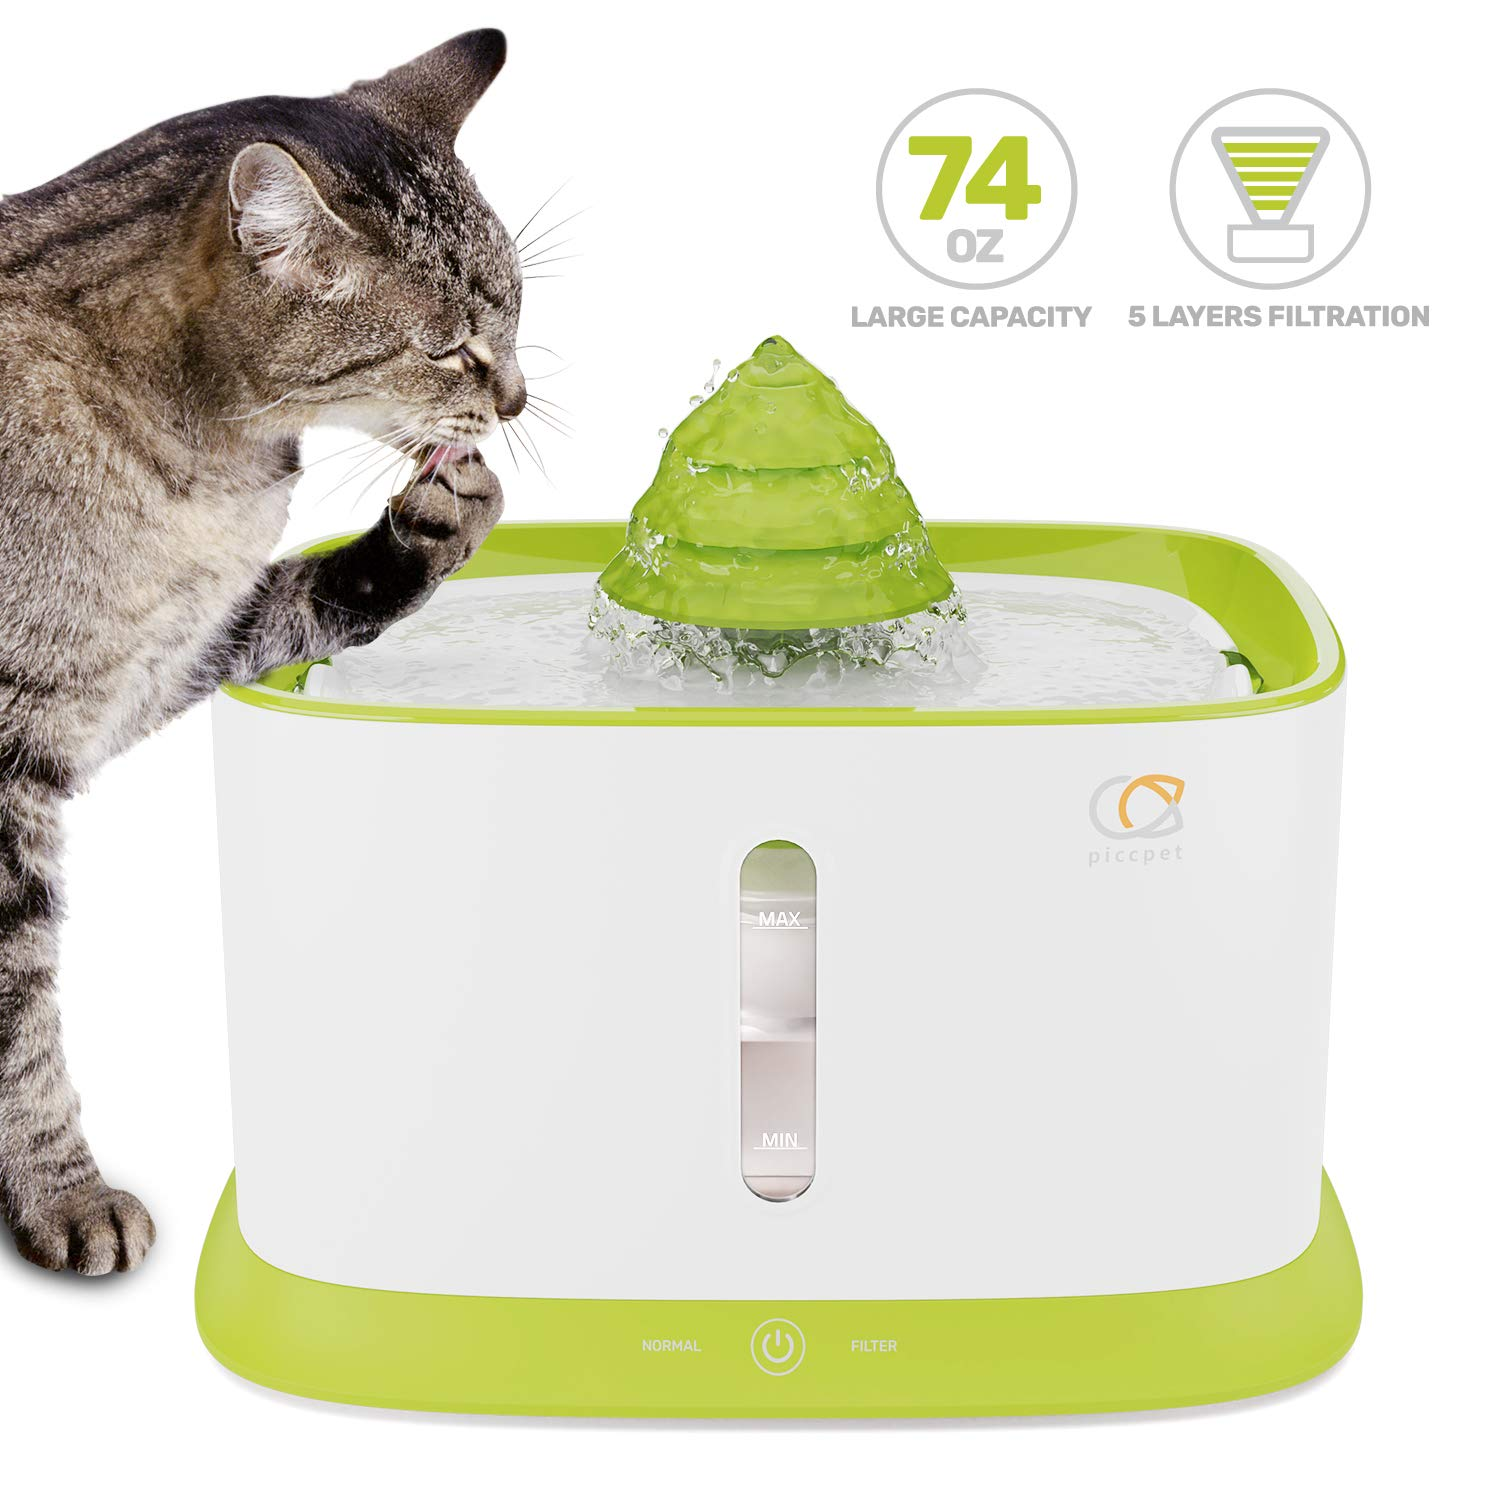 Piccpet Pet Fountain Cat Water Dispenser, 2.2L/74.4oz Healthy and Hygienic Drinking Automatic Water Fountain, Super Quiet Pets Auto Water Bowl with Filter, 2 Water Outlets for Cats, Dogs, Birds -Green by piccpet